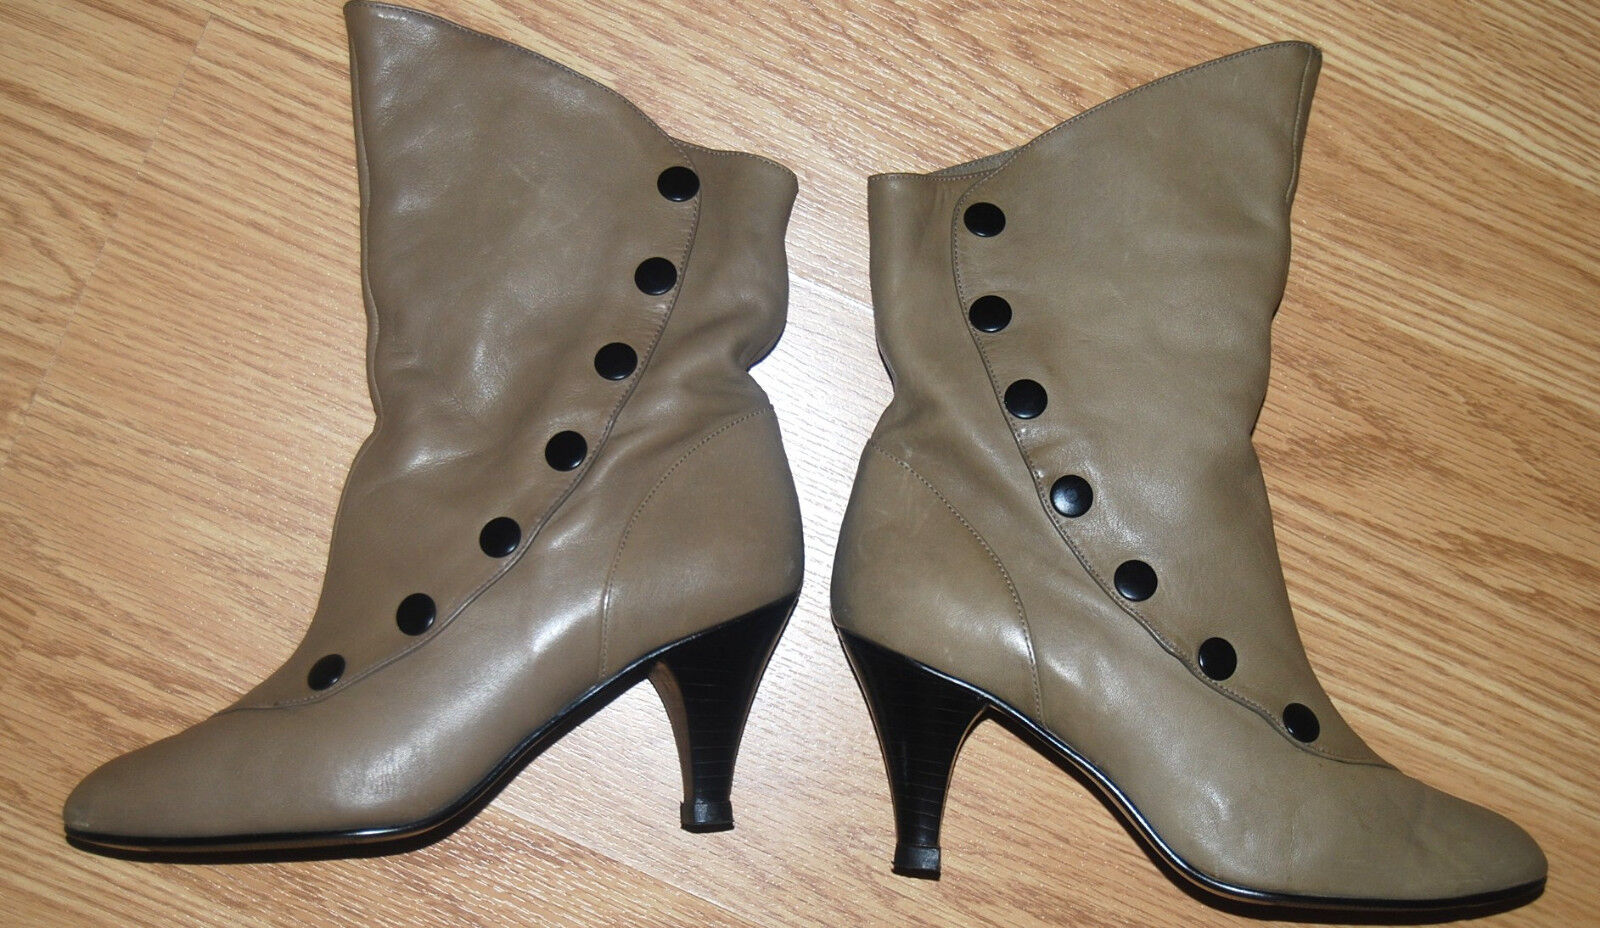 vtg 9 WEST Victorian taupe leather Granny button snap louis heel ANKLE BOOTS 6.5